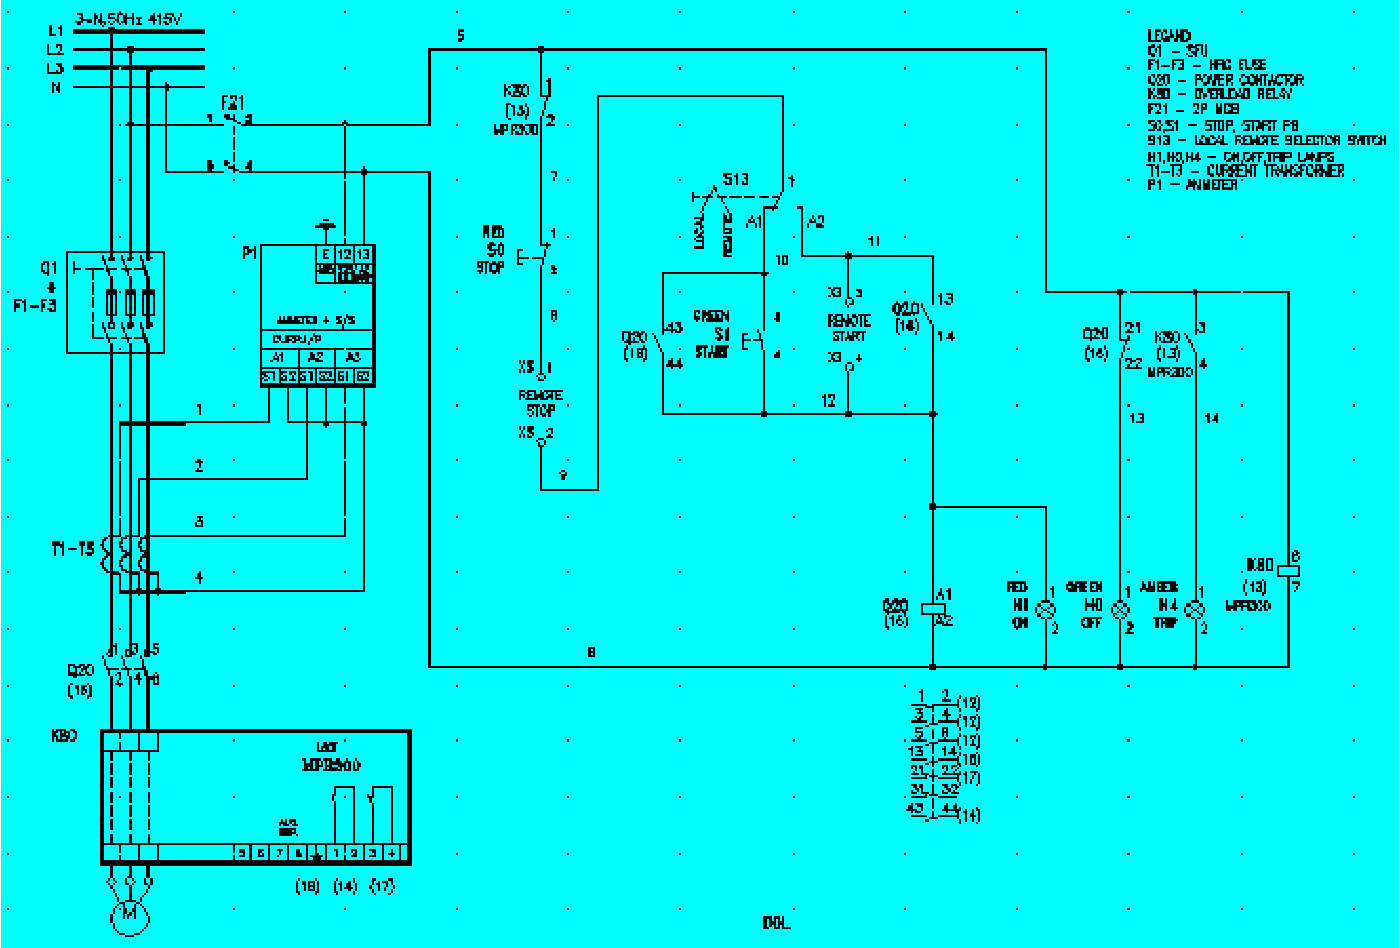 Siemens Tec Wiring Diagram likewise Wiring Diagram Yamaha 703 Remote Control in addition Why Use Autocad Electrical further How To Wire 3 Phase Electric also Doolittle Trailer Wiring Diagram. on mcc panel wiring diagram